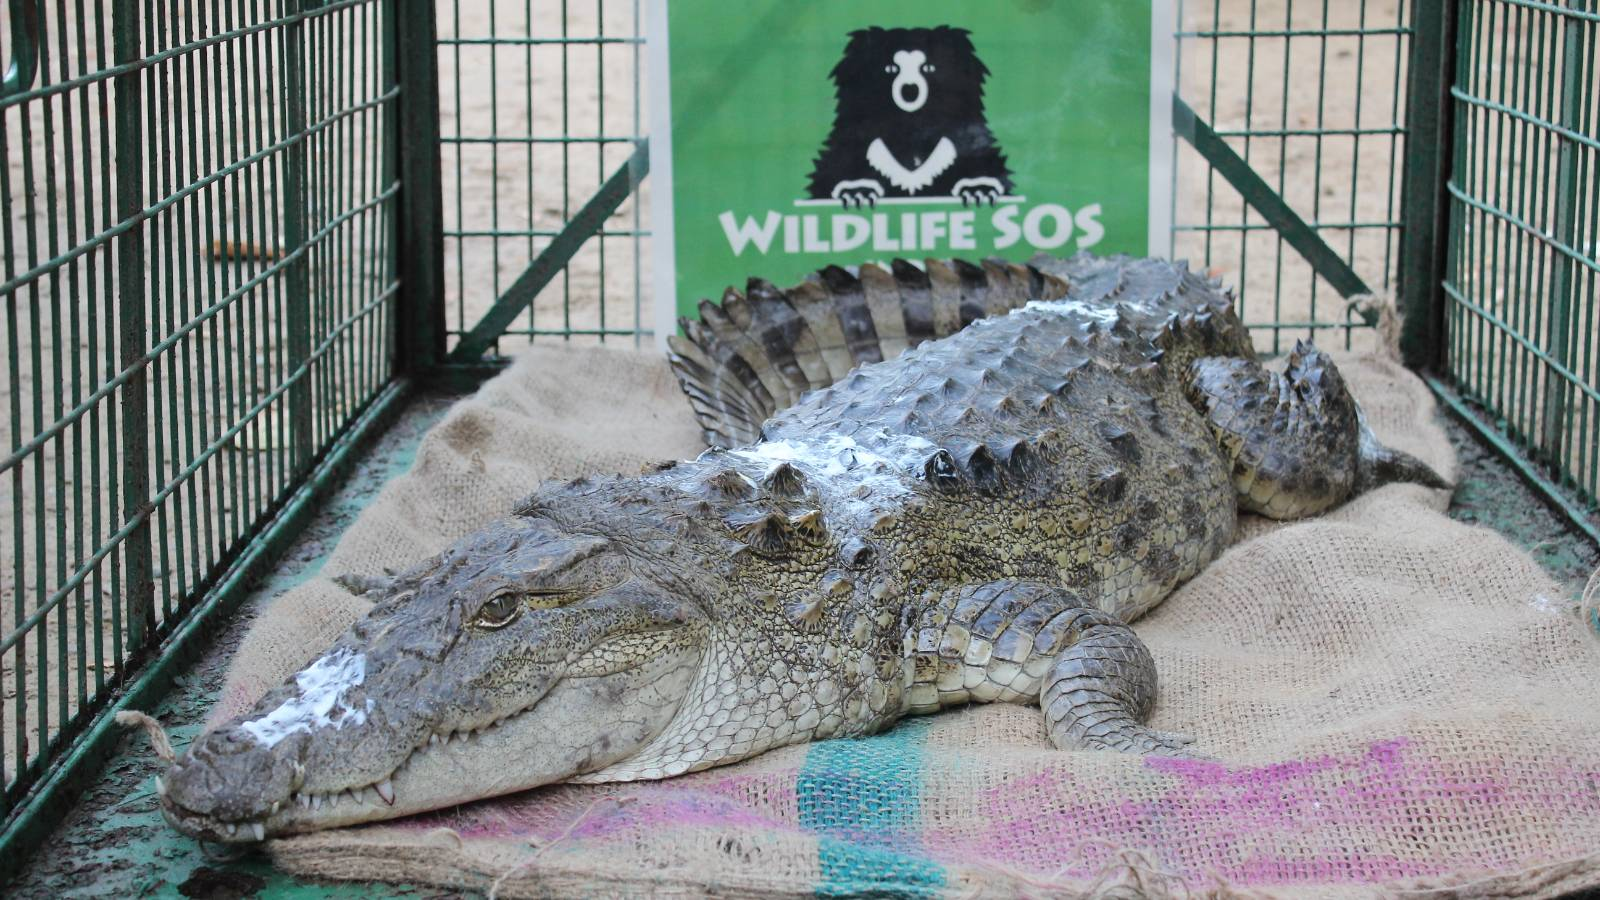 Rescued mugger crocodile which had entered a village. It was later released back into the wild